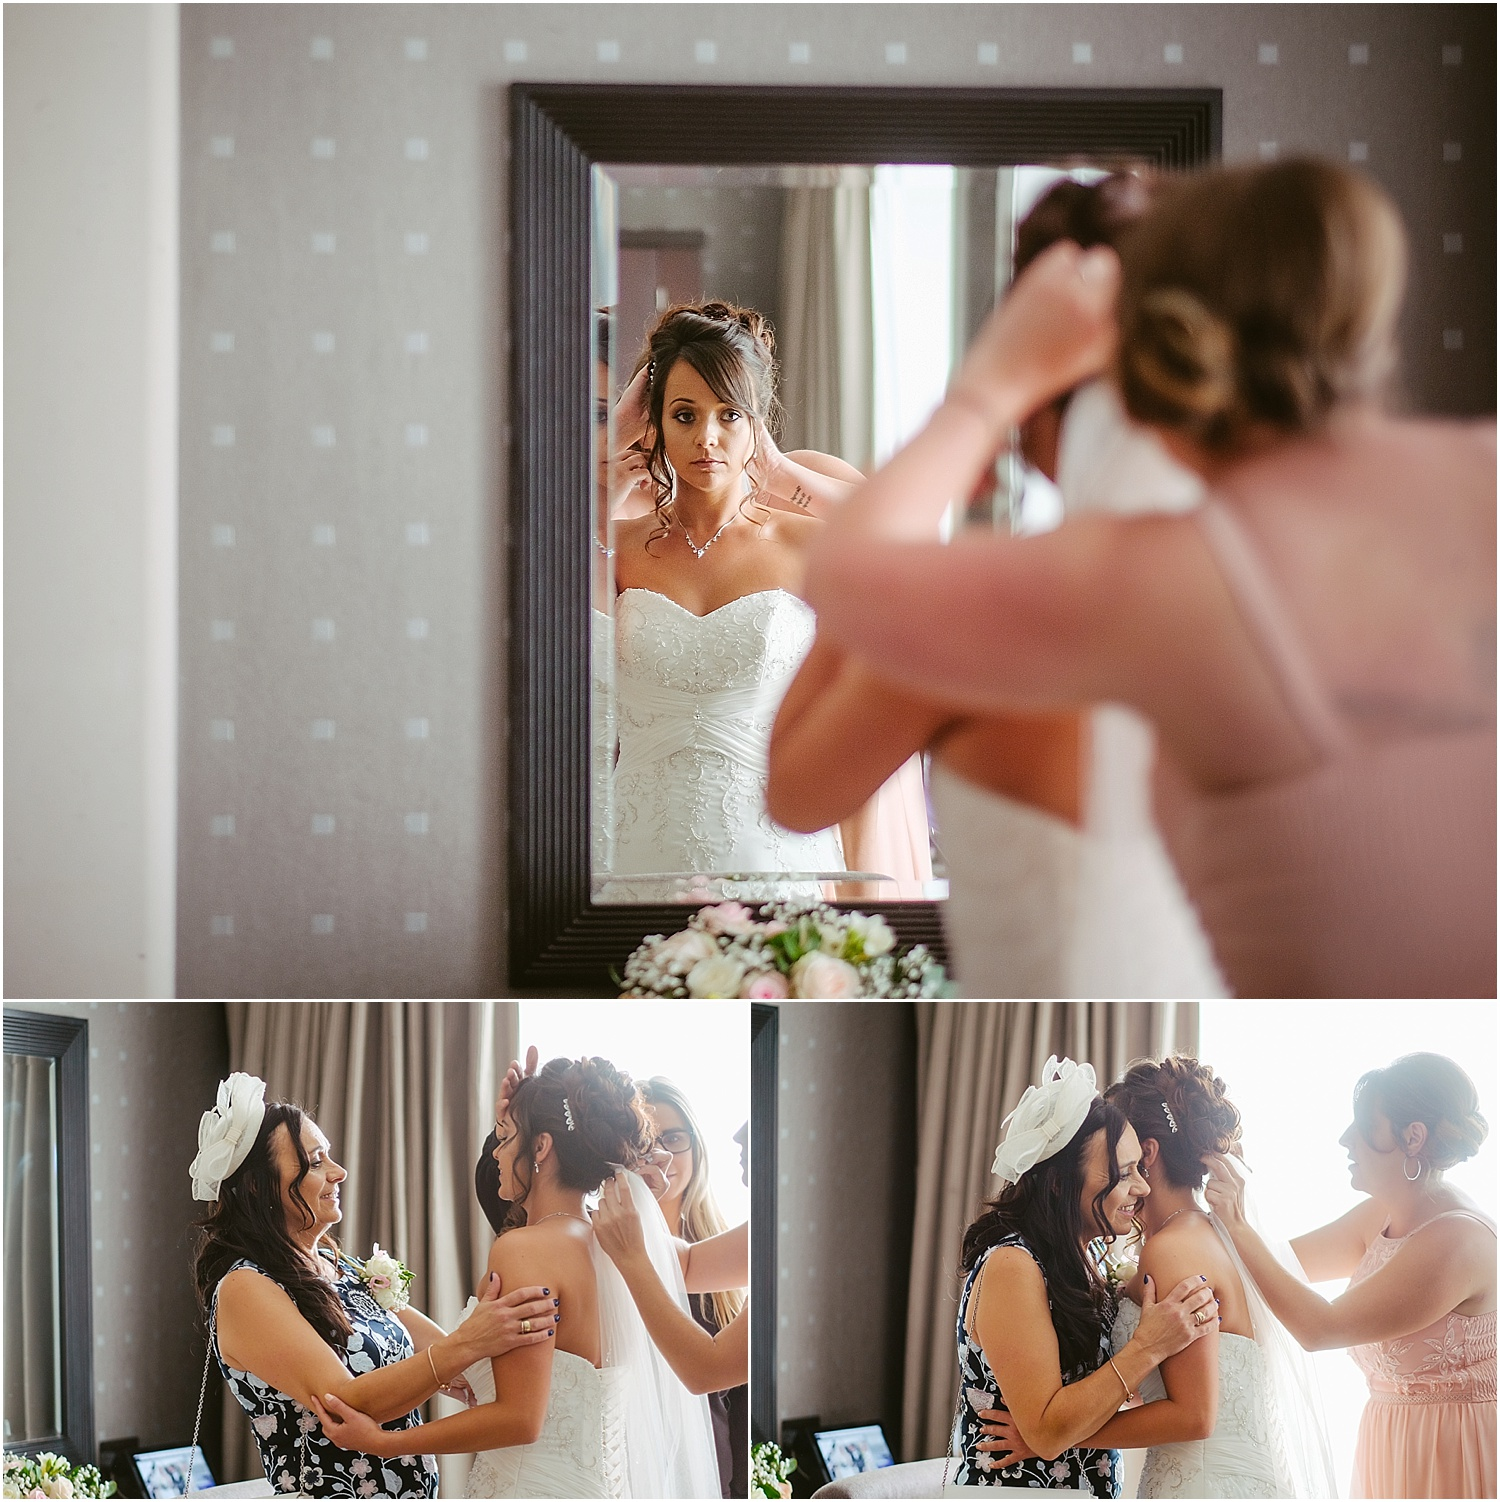 Wedding at Seaham Hall - wedding photography by www.2tonephotography.co.uk 016.jpg